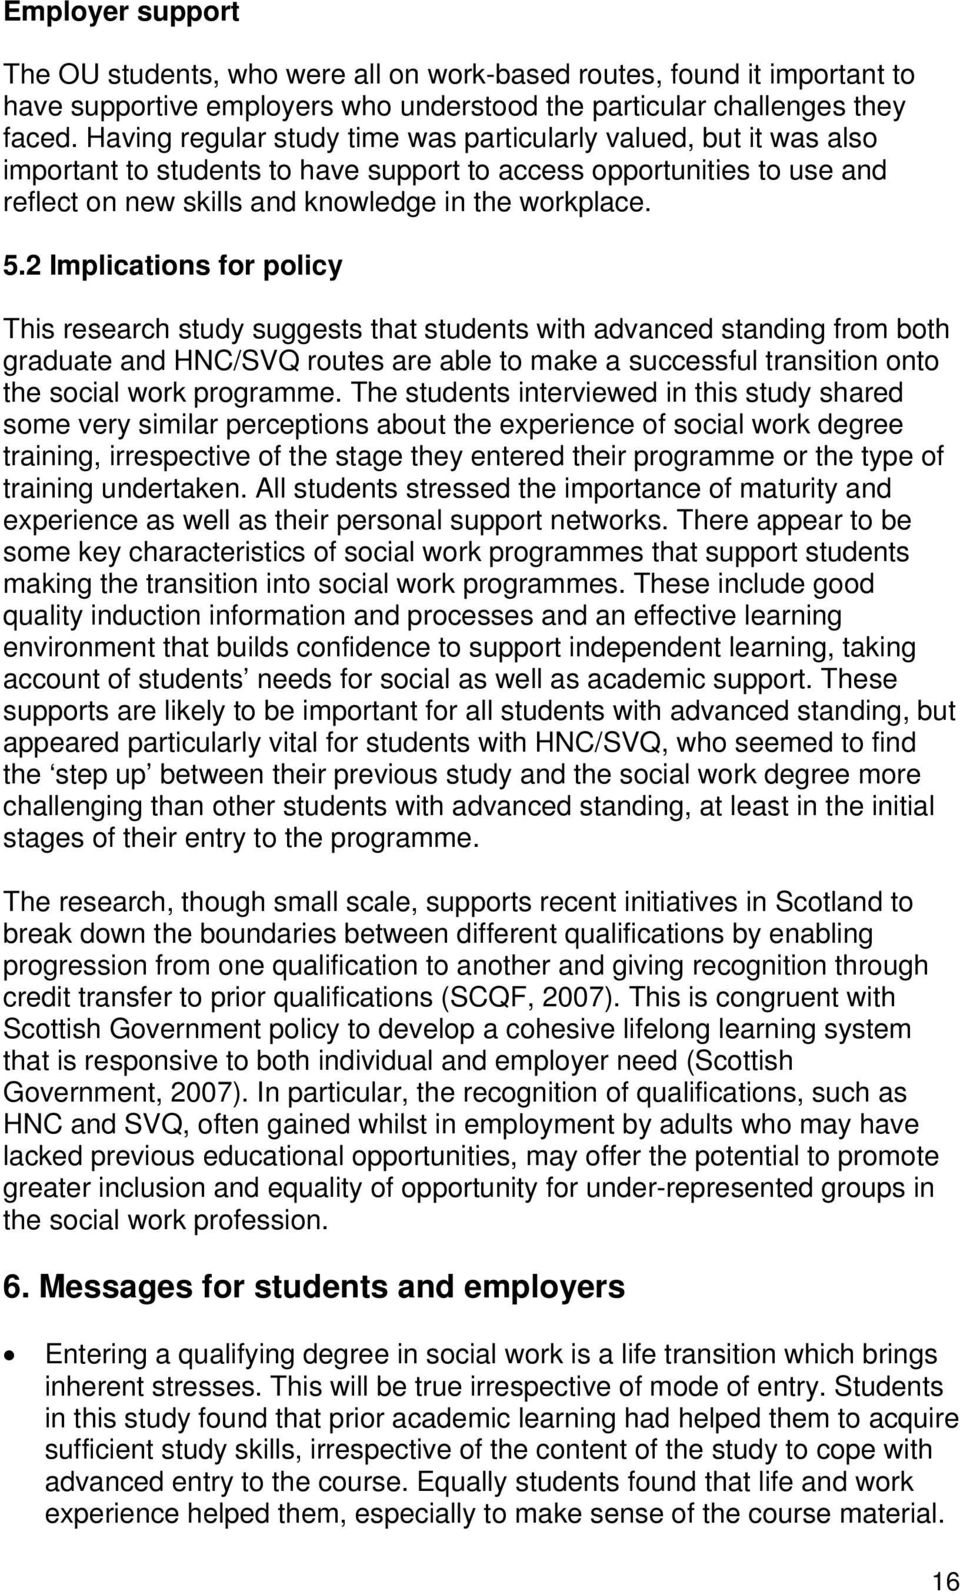 2 Implications for policy This research study suggests that students with advanced standing from both graduate and HNC/SVQ routes are able to make a successful transition onto the social work